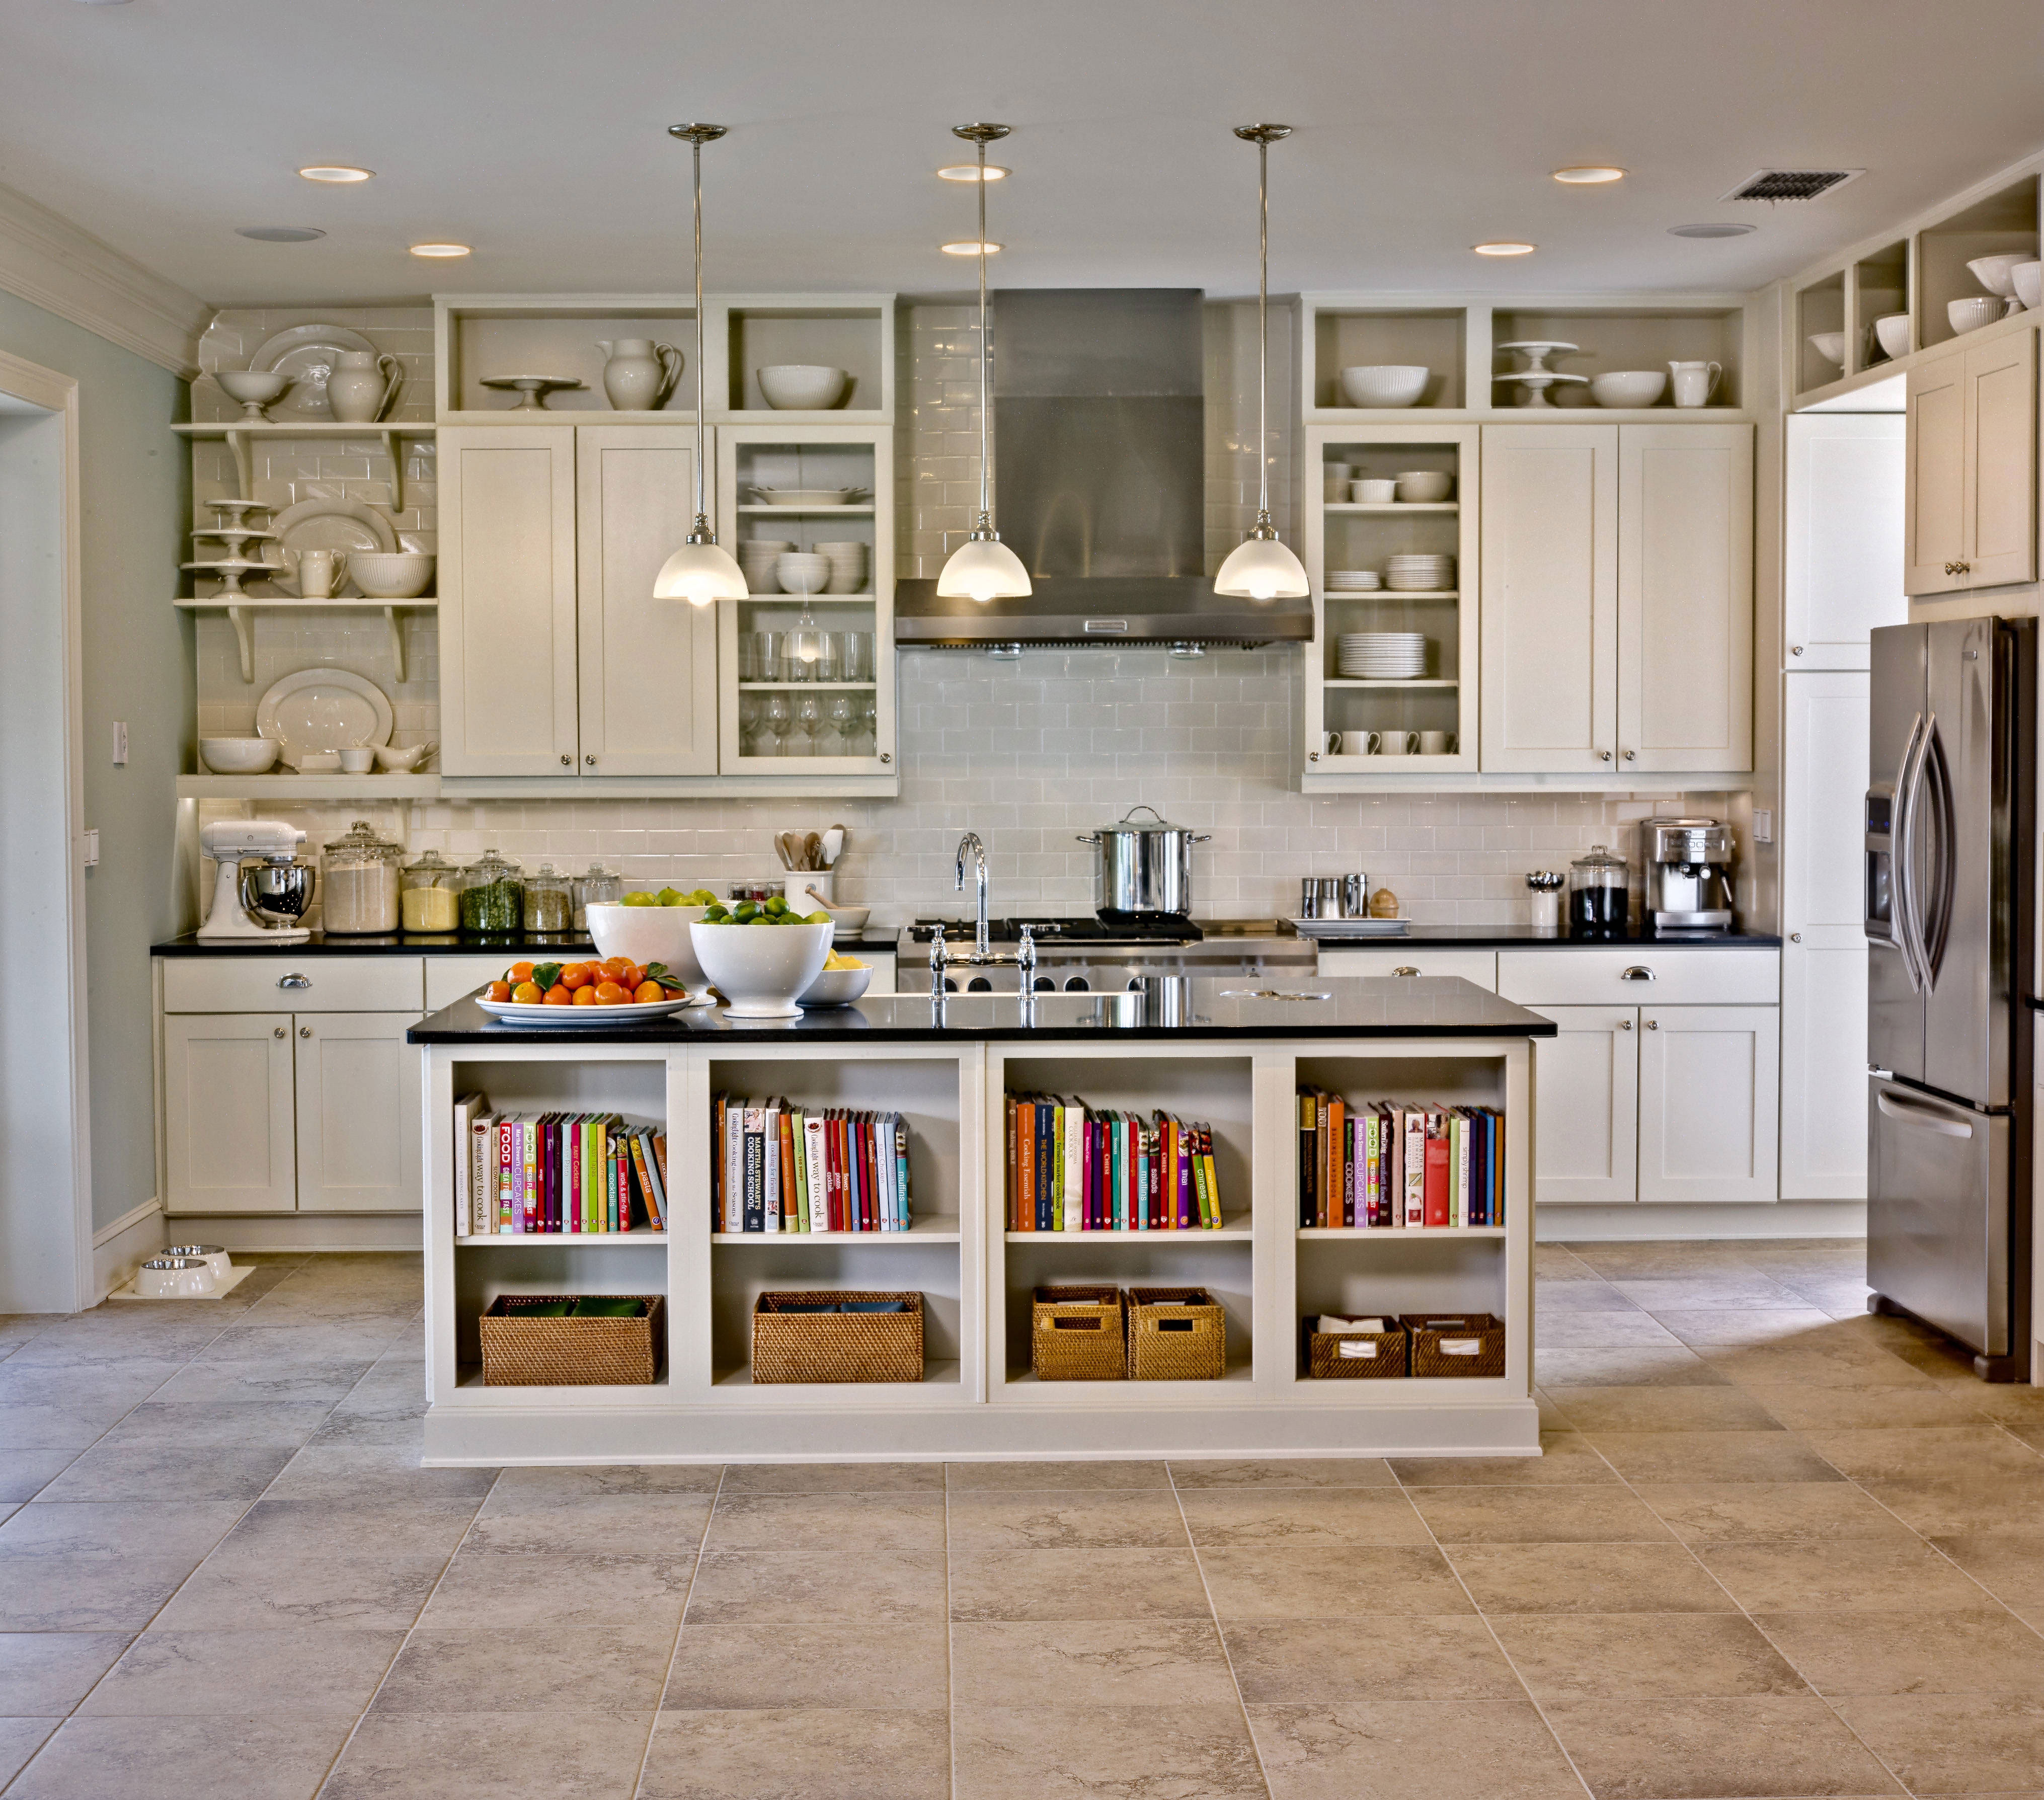 white-kitchen-designs-with-islands-as-contemporary-kitchen-design-for-adorable-Kitchen-ideas-123